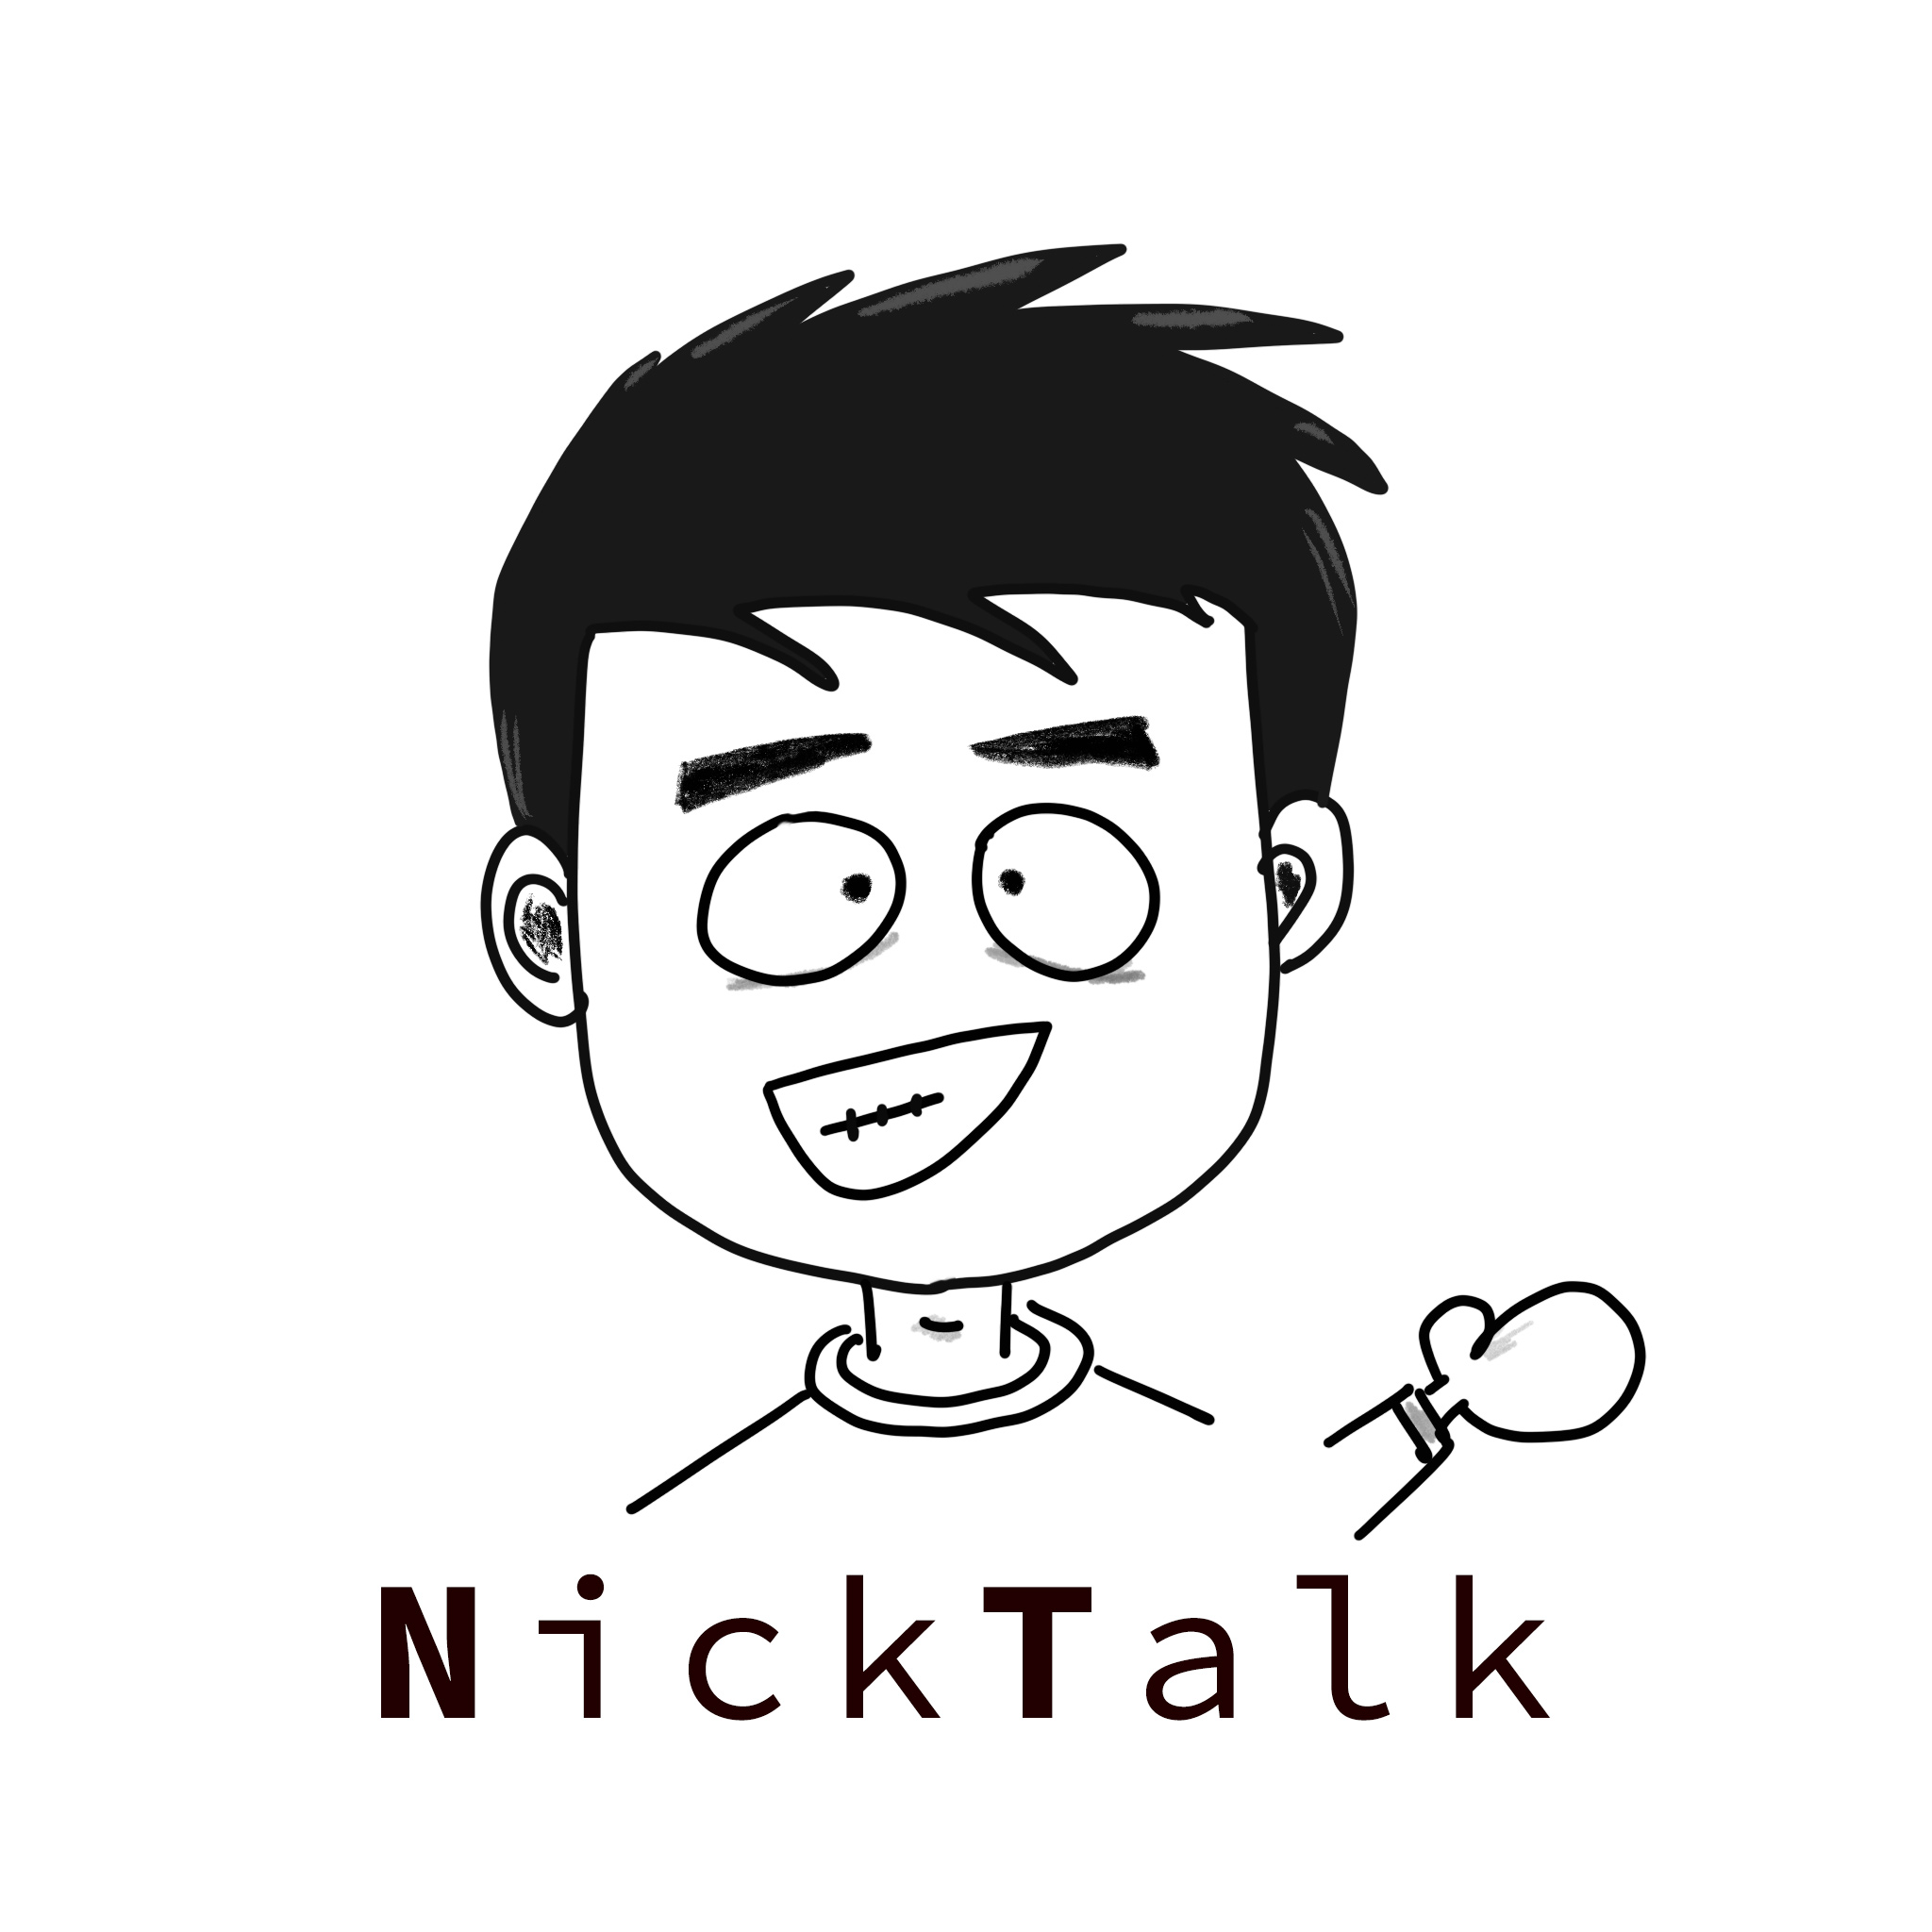 NickTalk.jpg